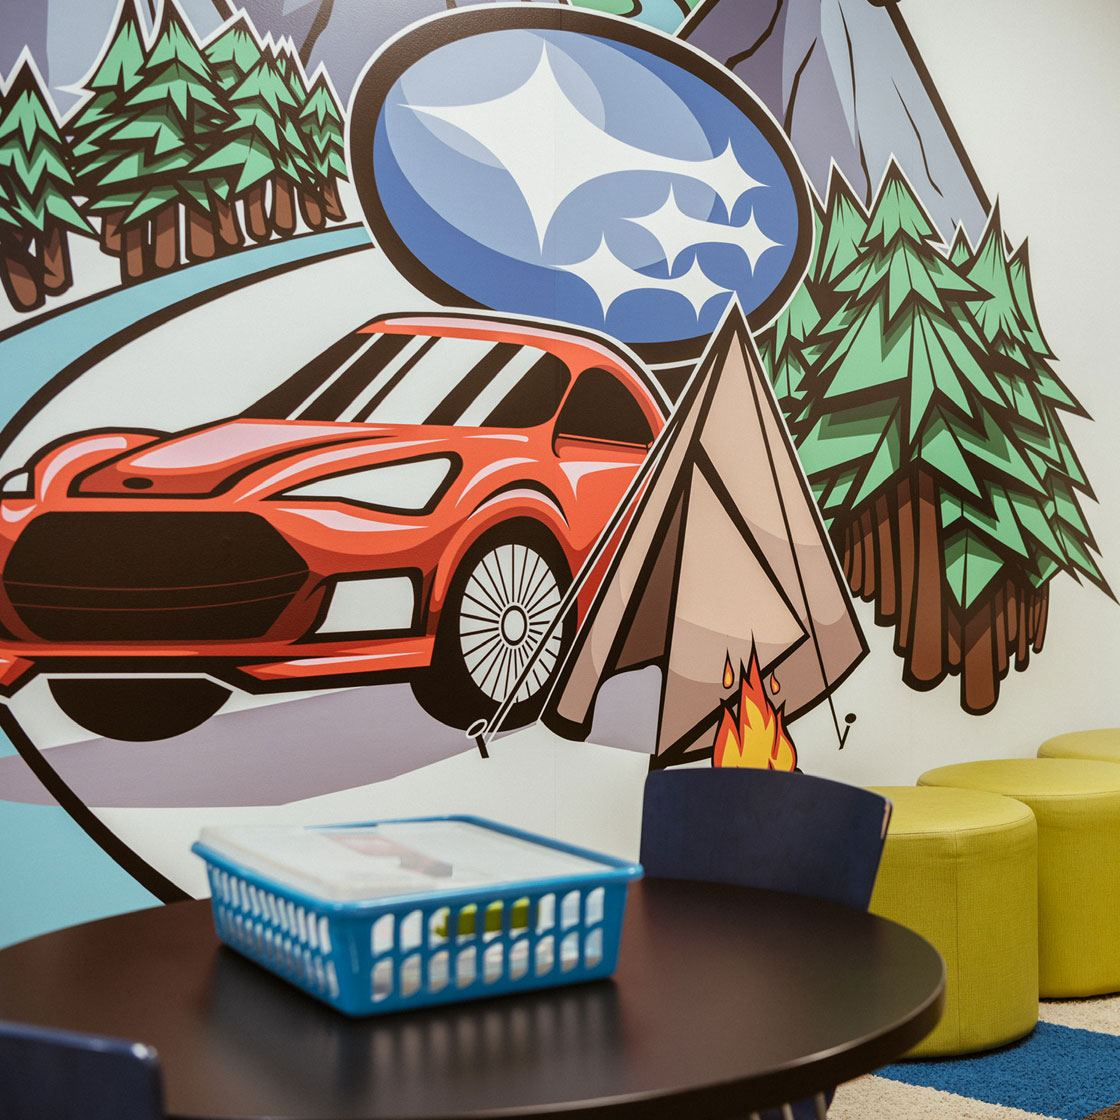 Example of graphically illustrated vinyl mural.